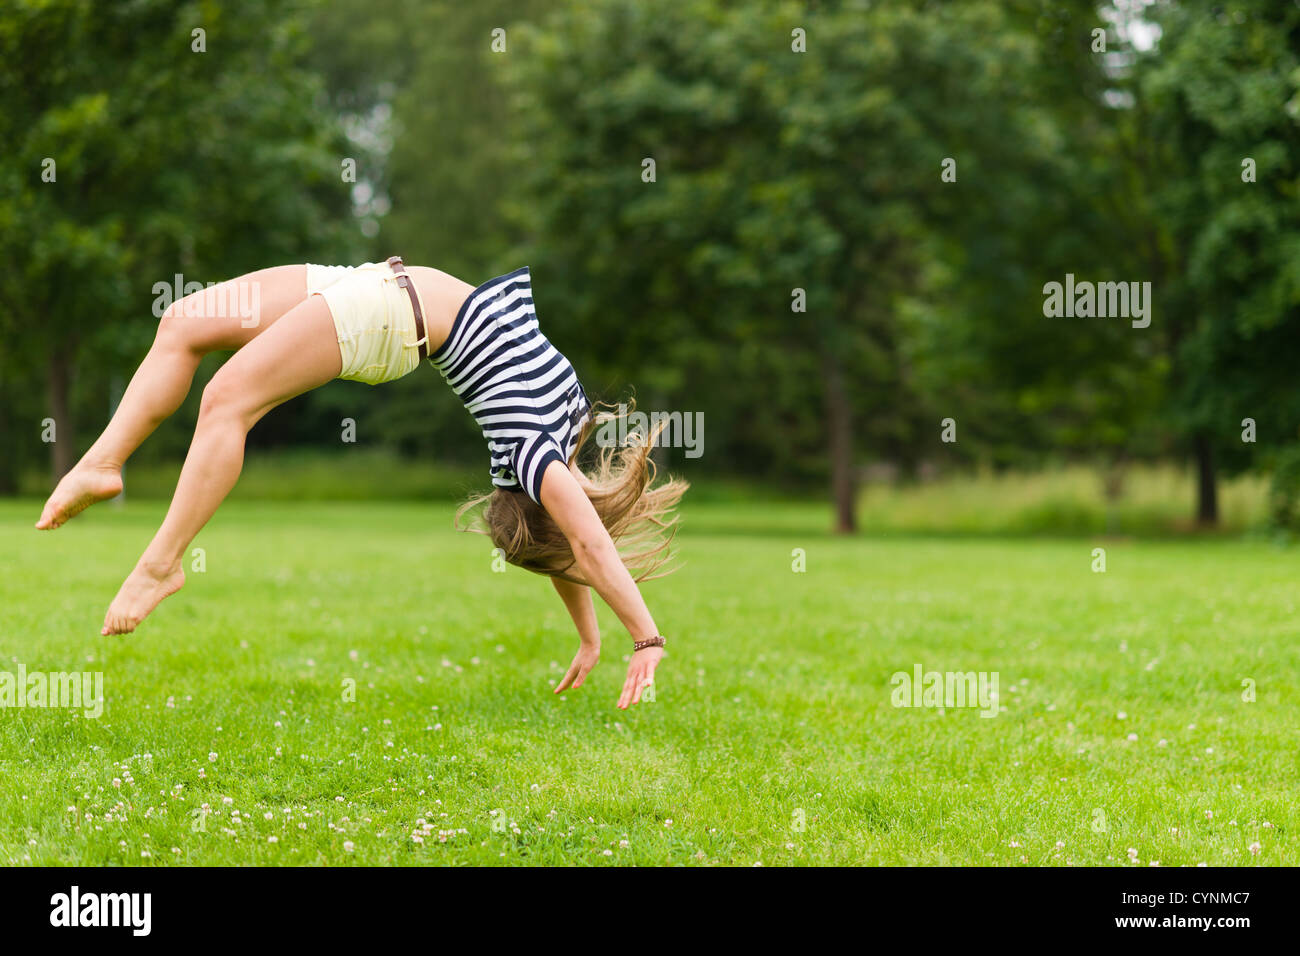 Young sporty girl jump backwards at the park, image with narrow depth of field Stock Foto